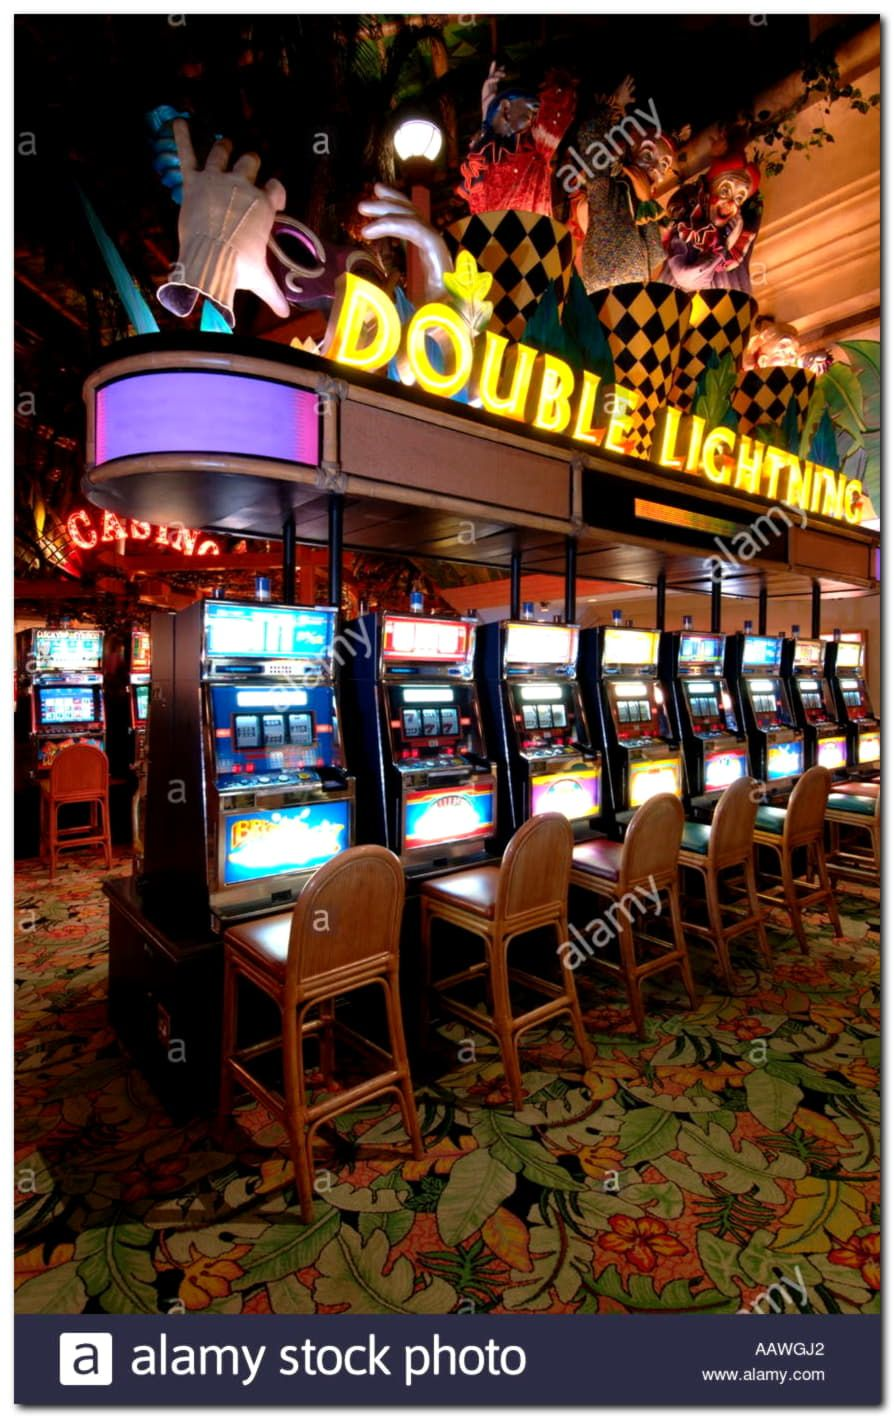 120 free spins no deposit casino at red ping win casino in